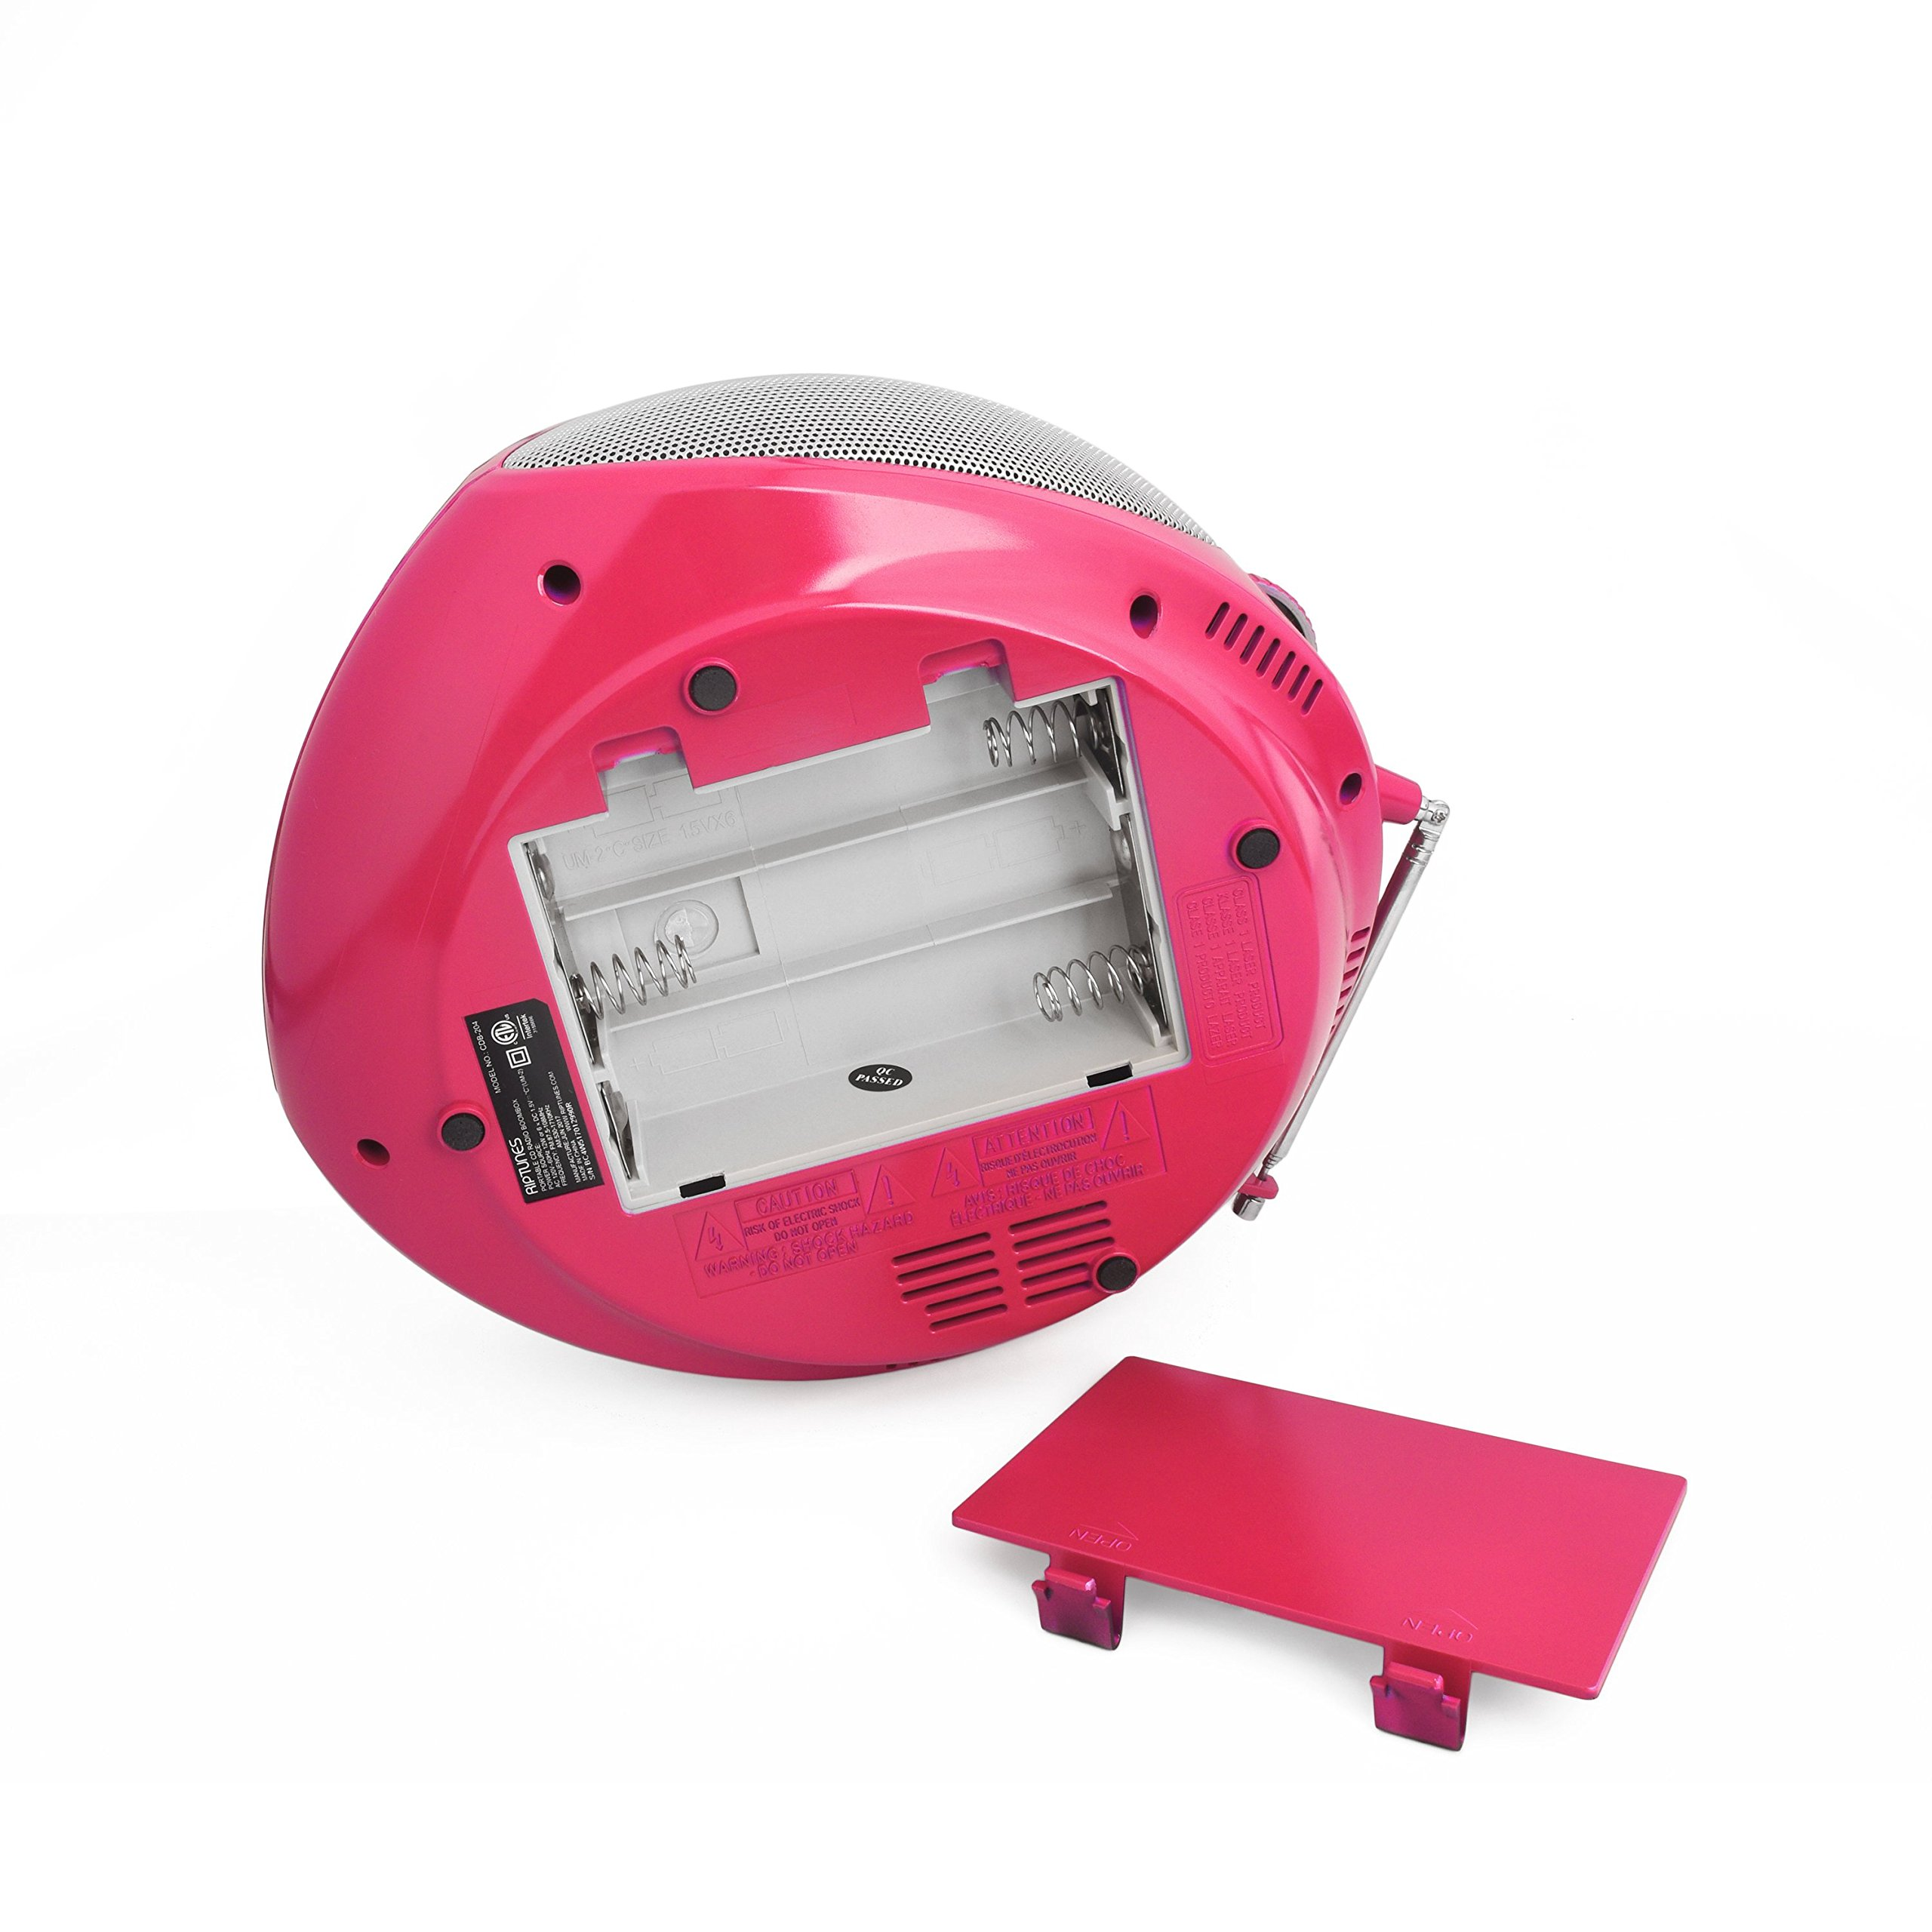 Riptunes Portable CD Player with AM FM Radio Potable radios Boom Box with Aux Line-in, Pink by Riptunes (Image #6)